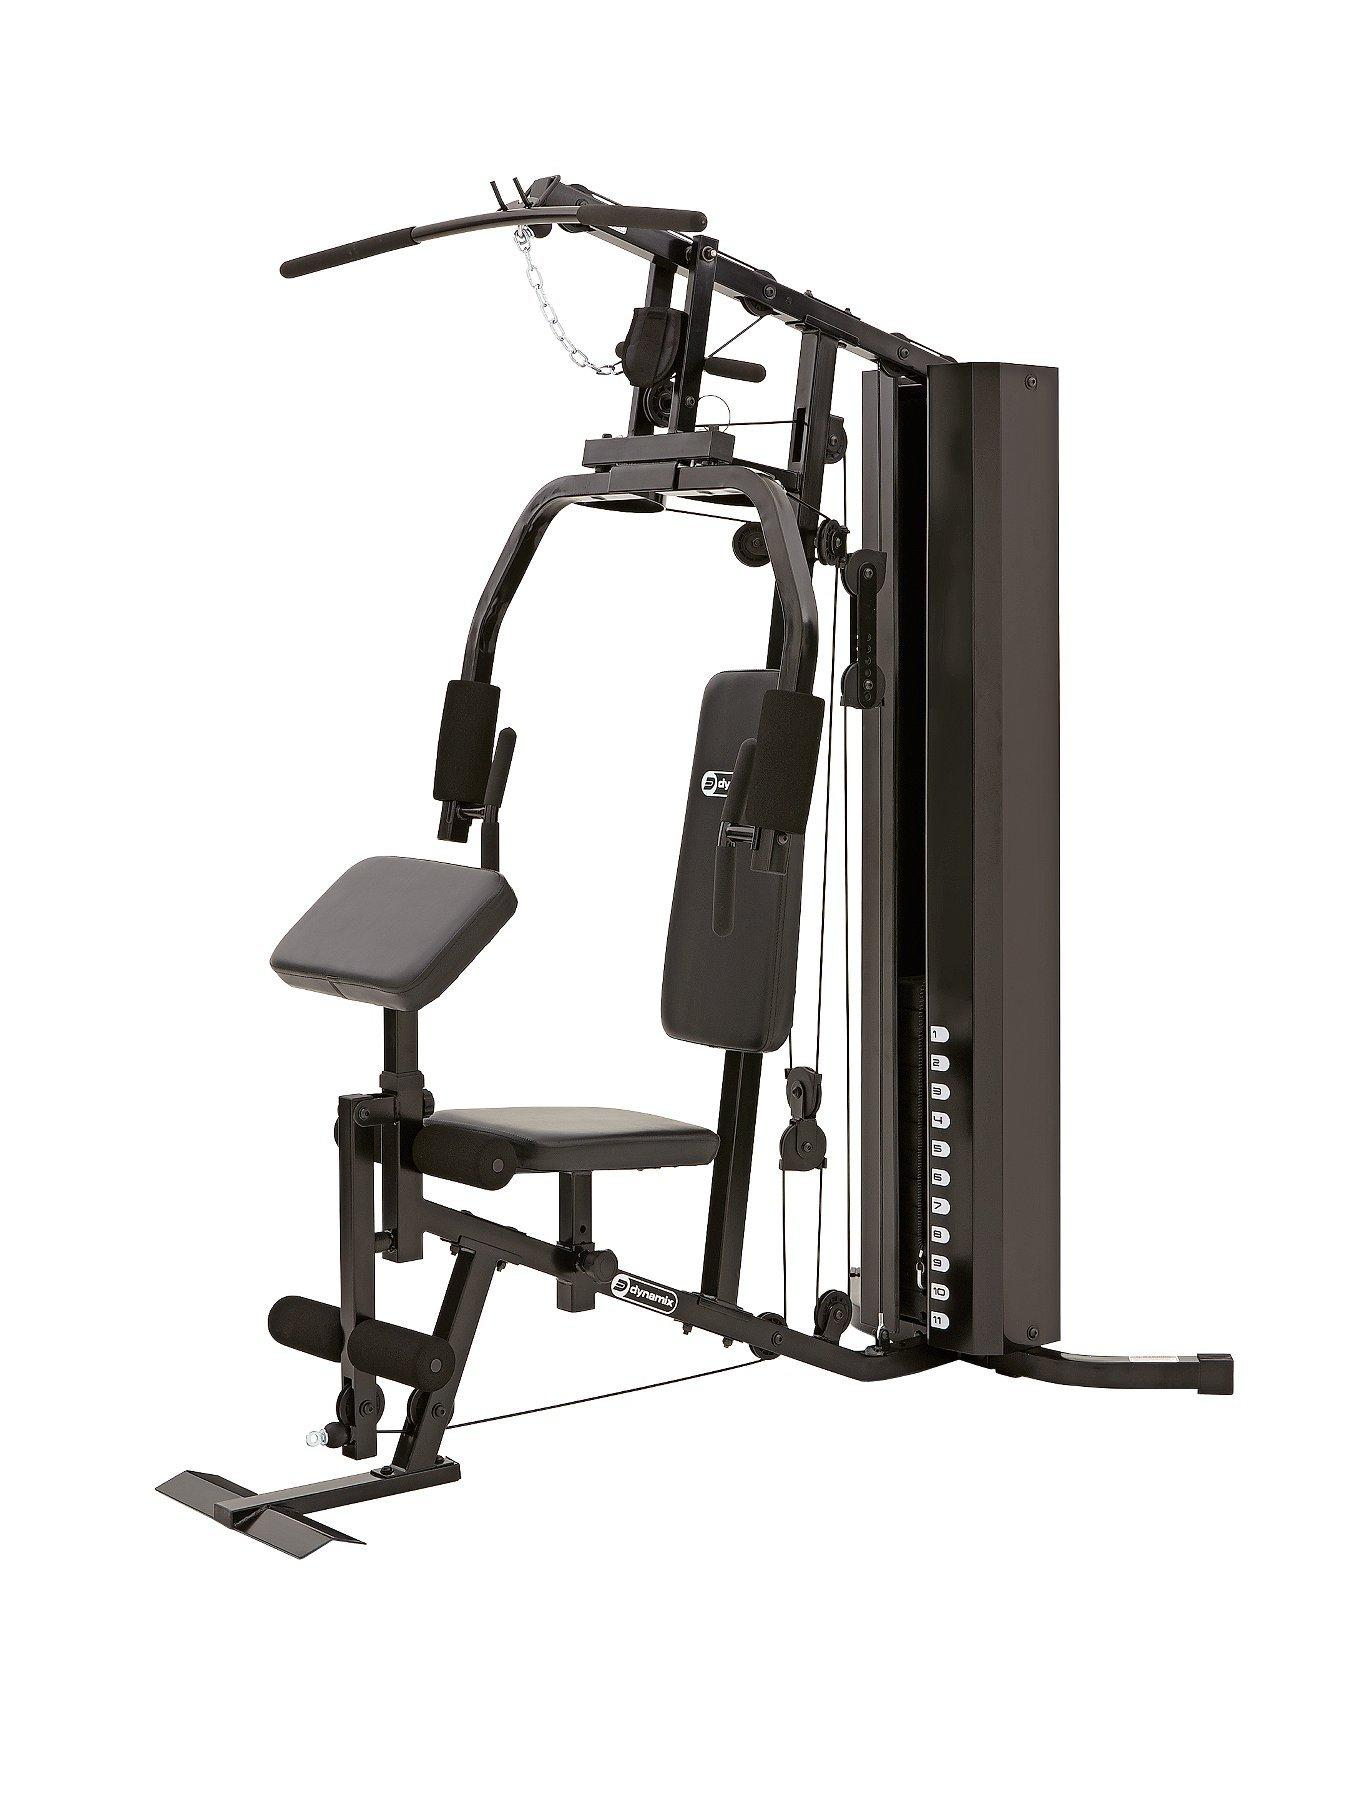 Dynamix compact home gym very